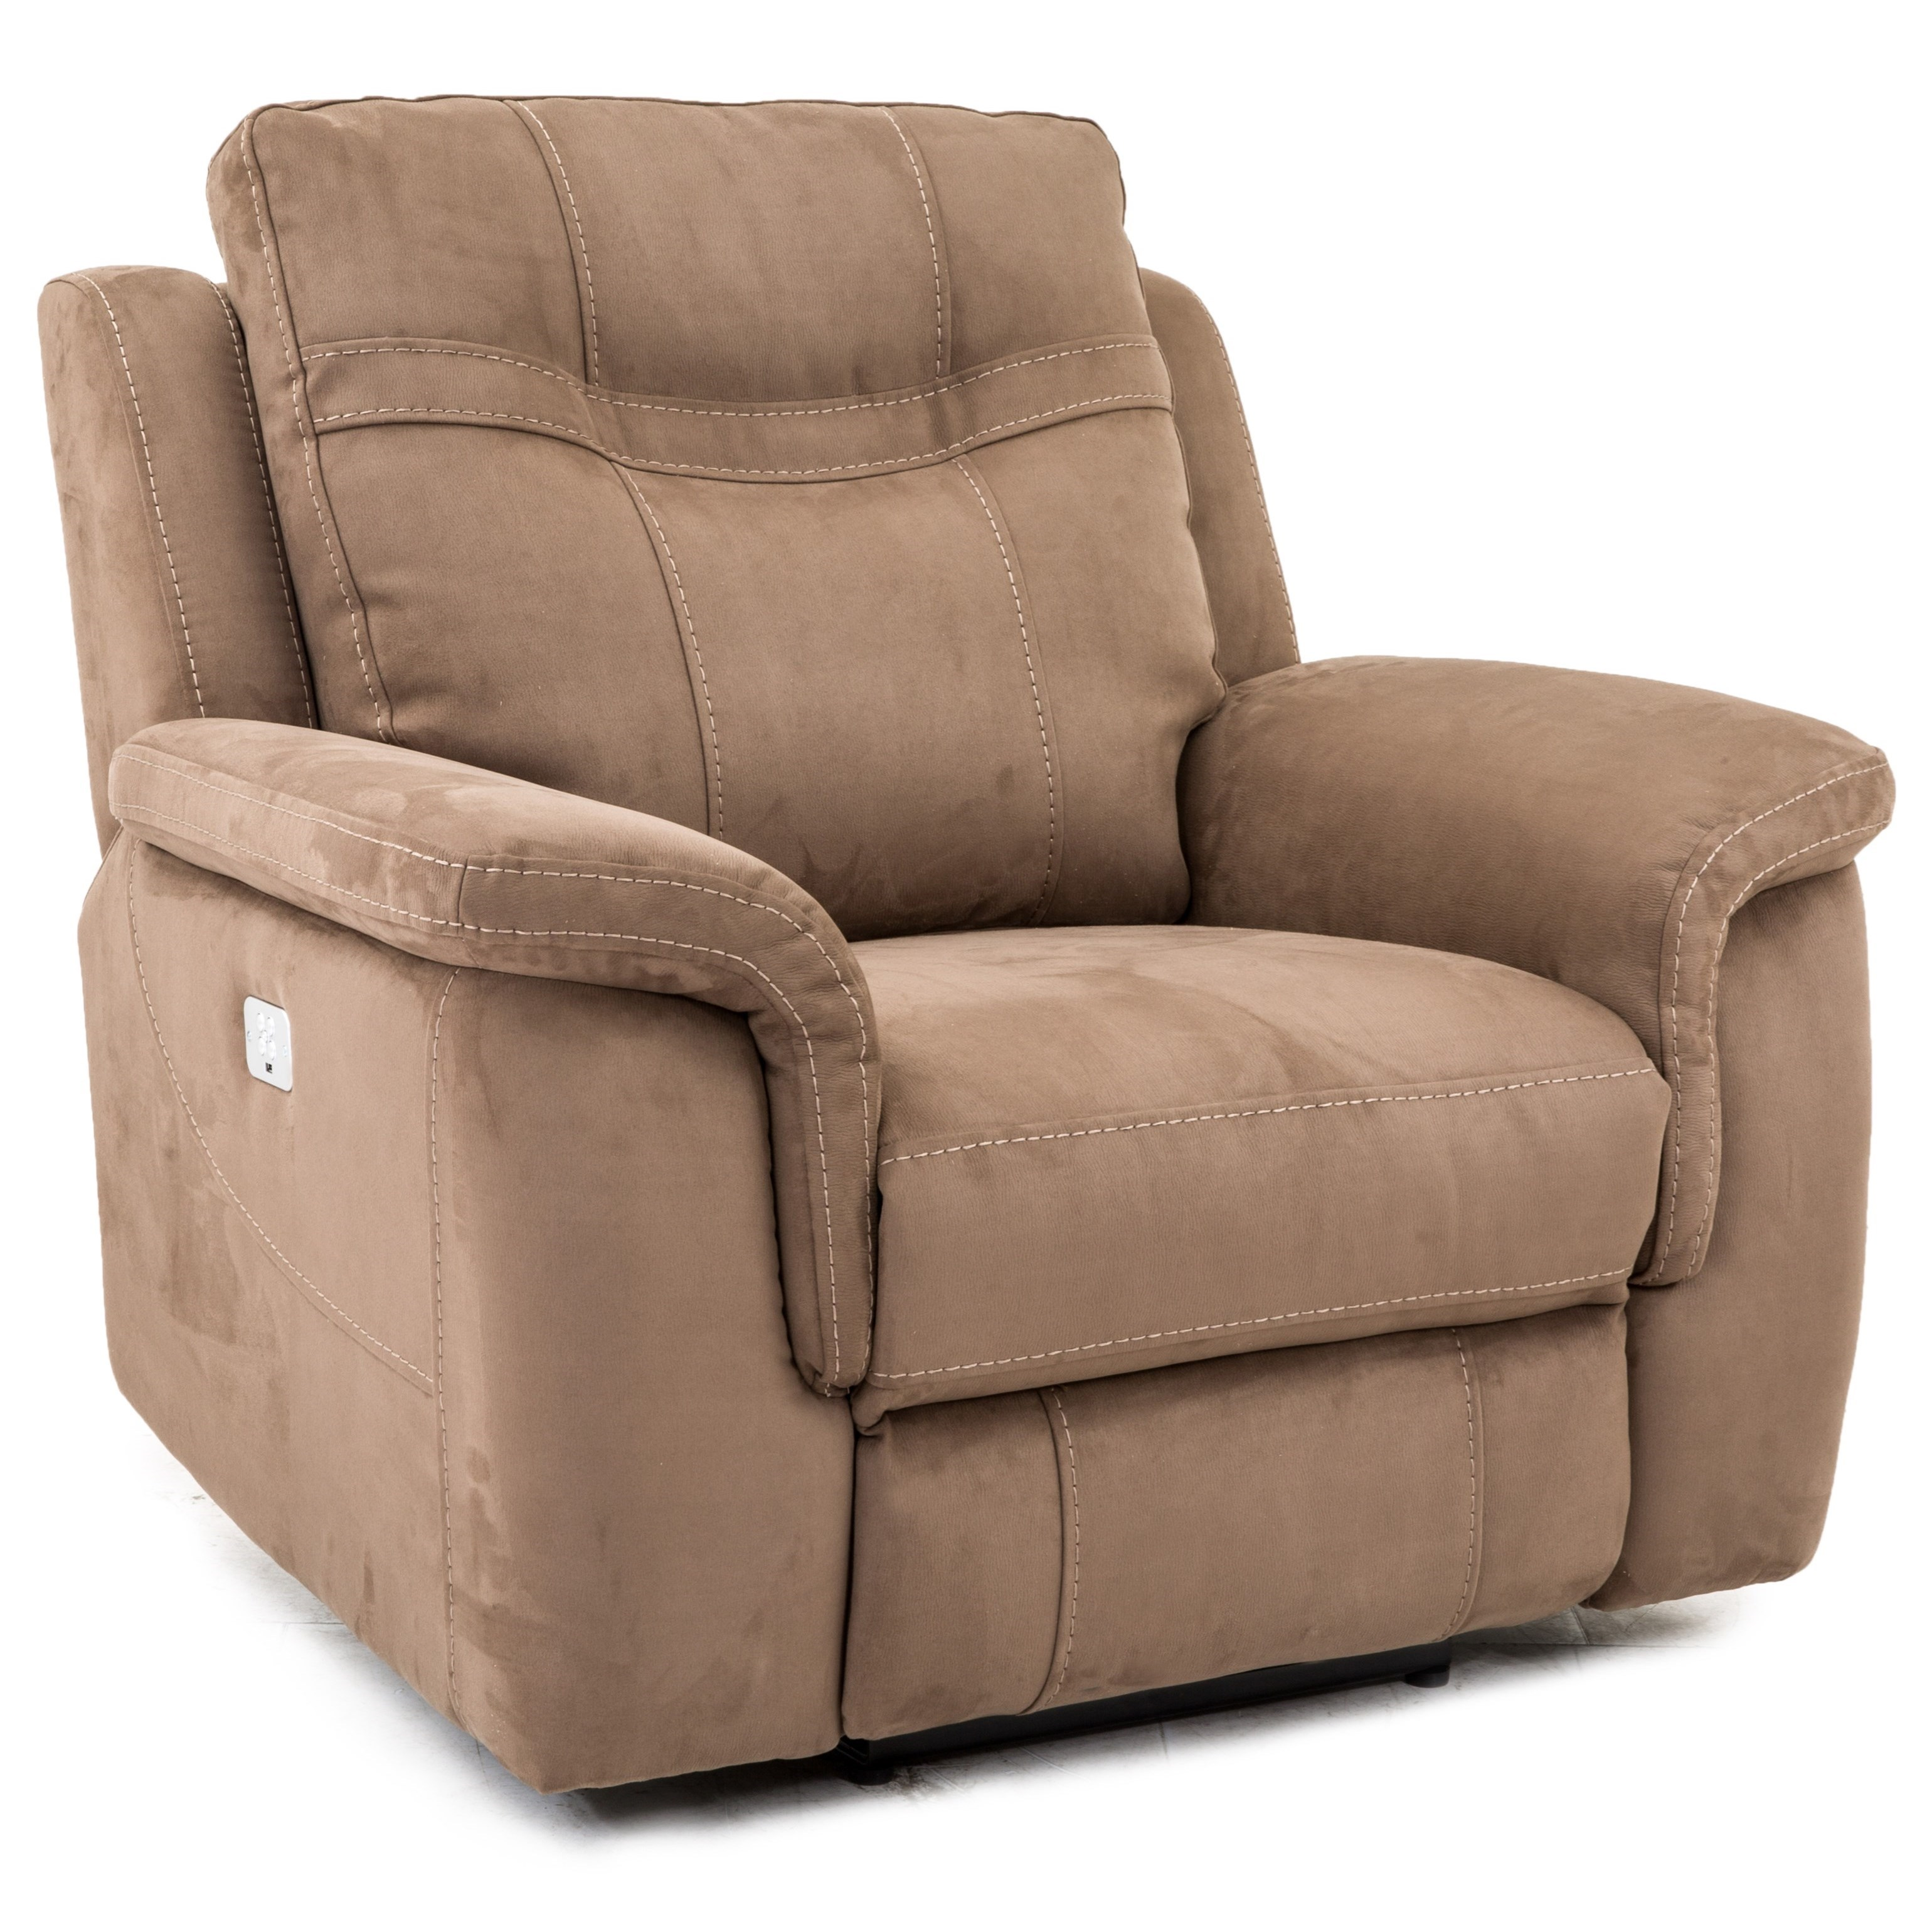 5169 Power Recliner by Cheers Sofa at Lagniappe Home Store